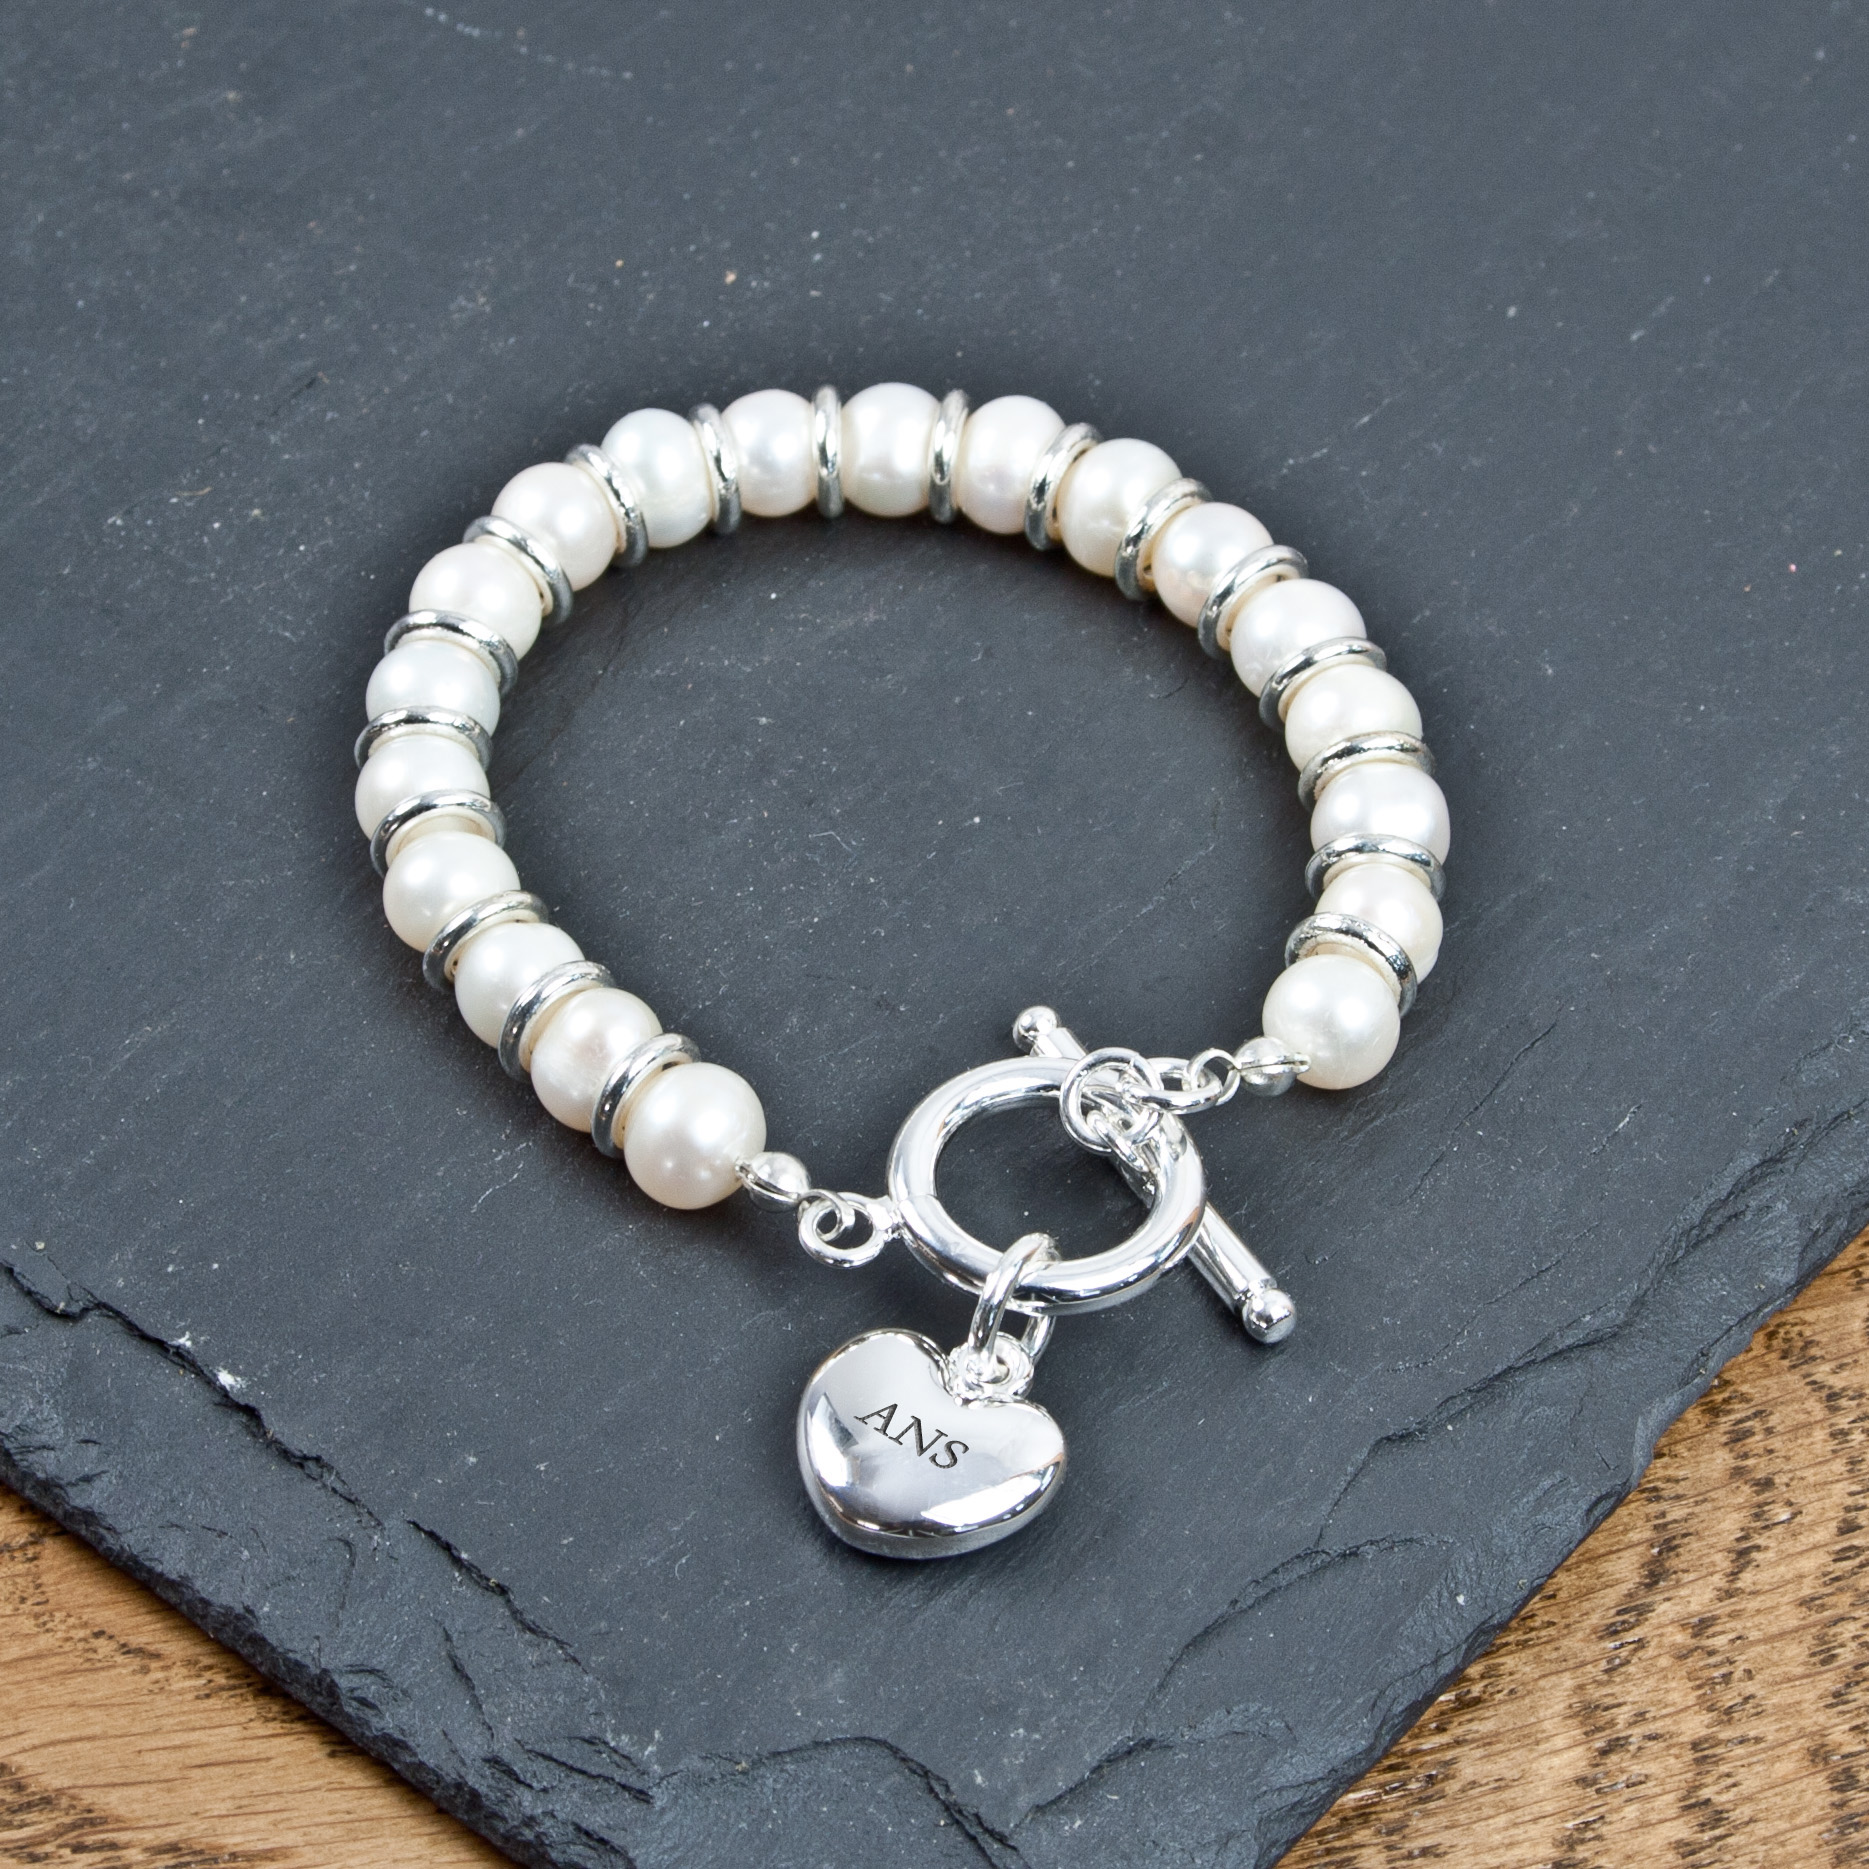 Personalised White Harmony Bracelet